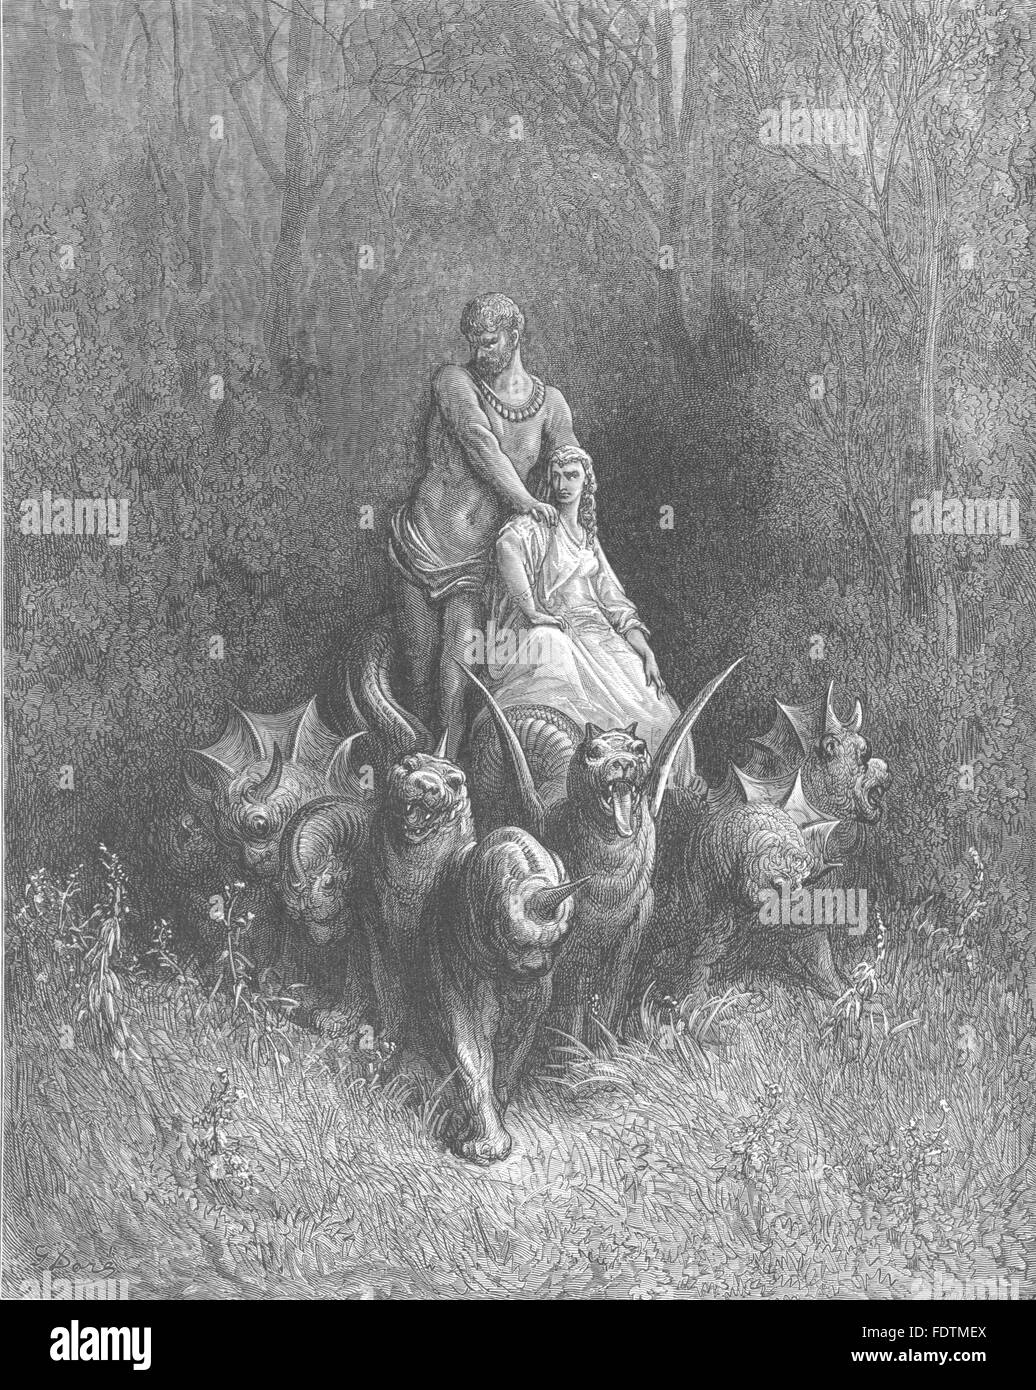 DANTE:side,ast that none might bear,saw giant stand;ever anon they mingled, 1893 - Stock Image